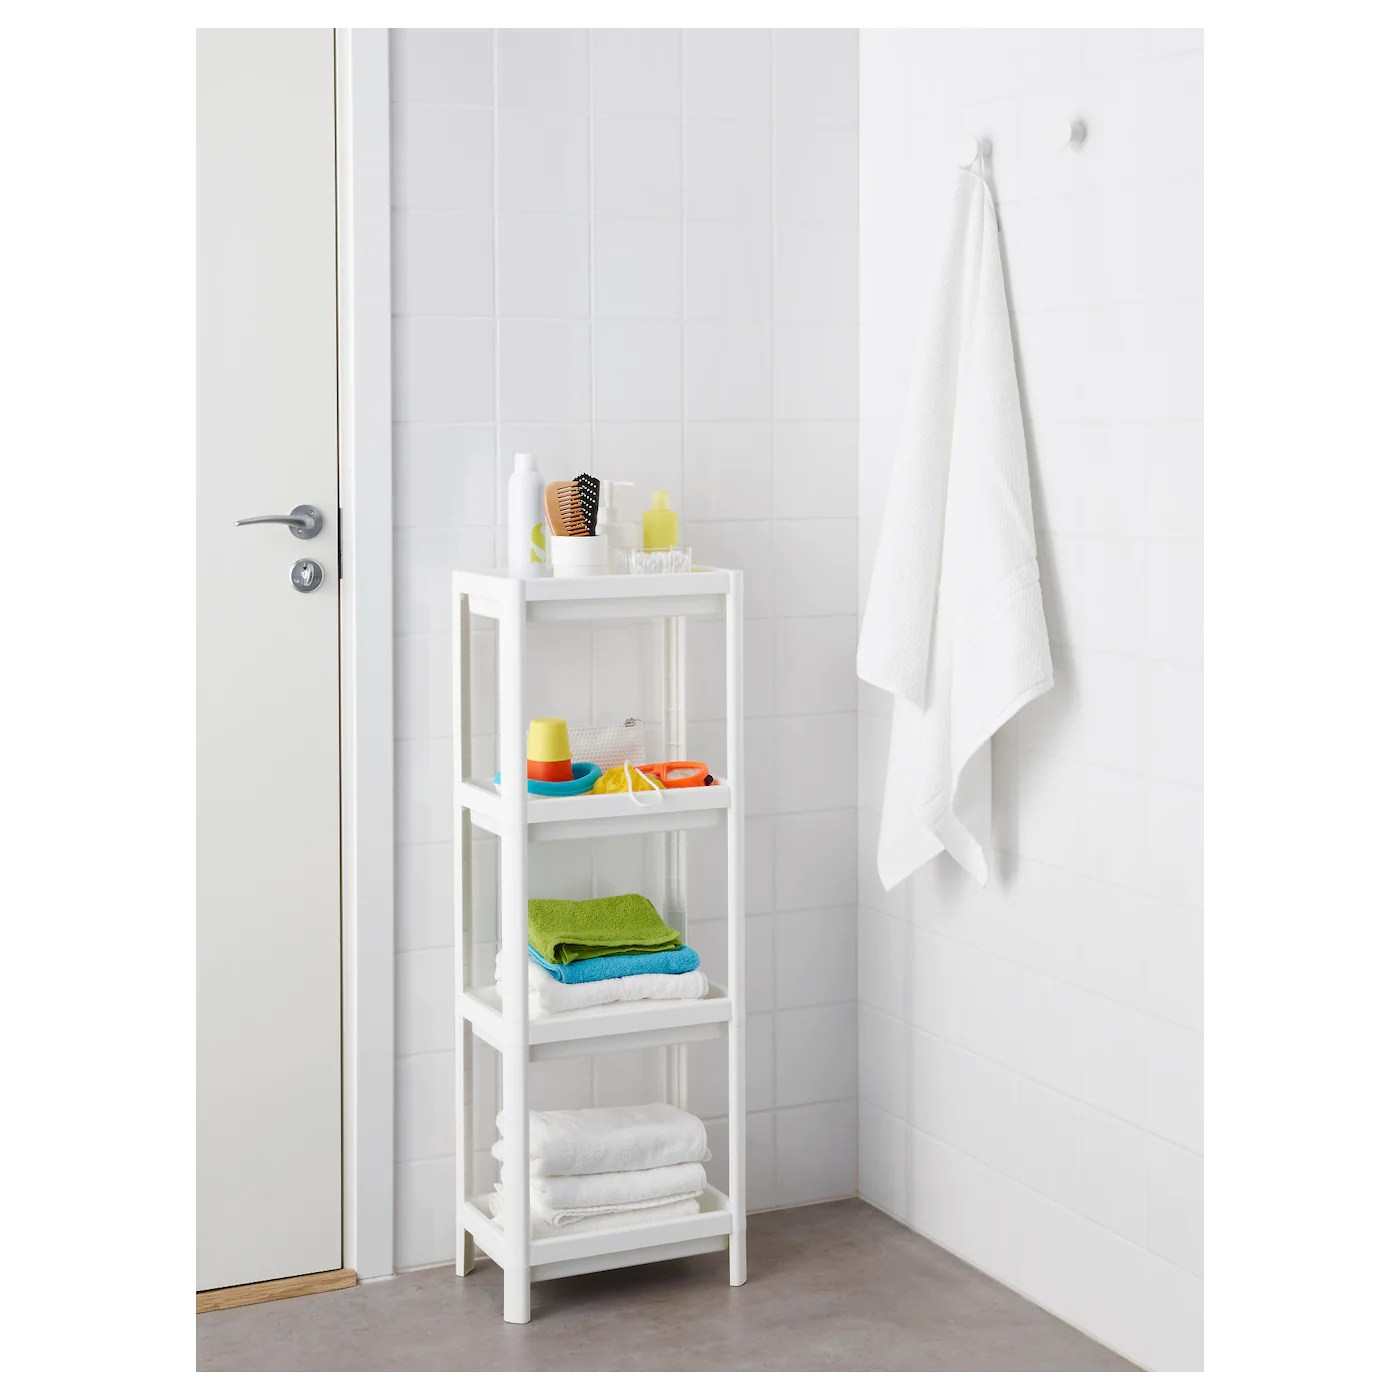 Ikea Vesken Vesken Shelf Unit White